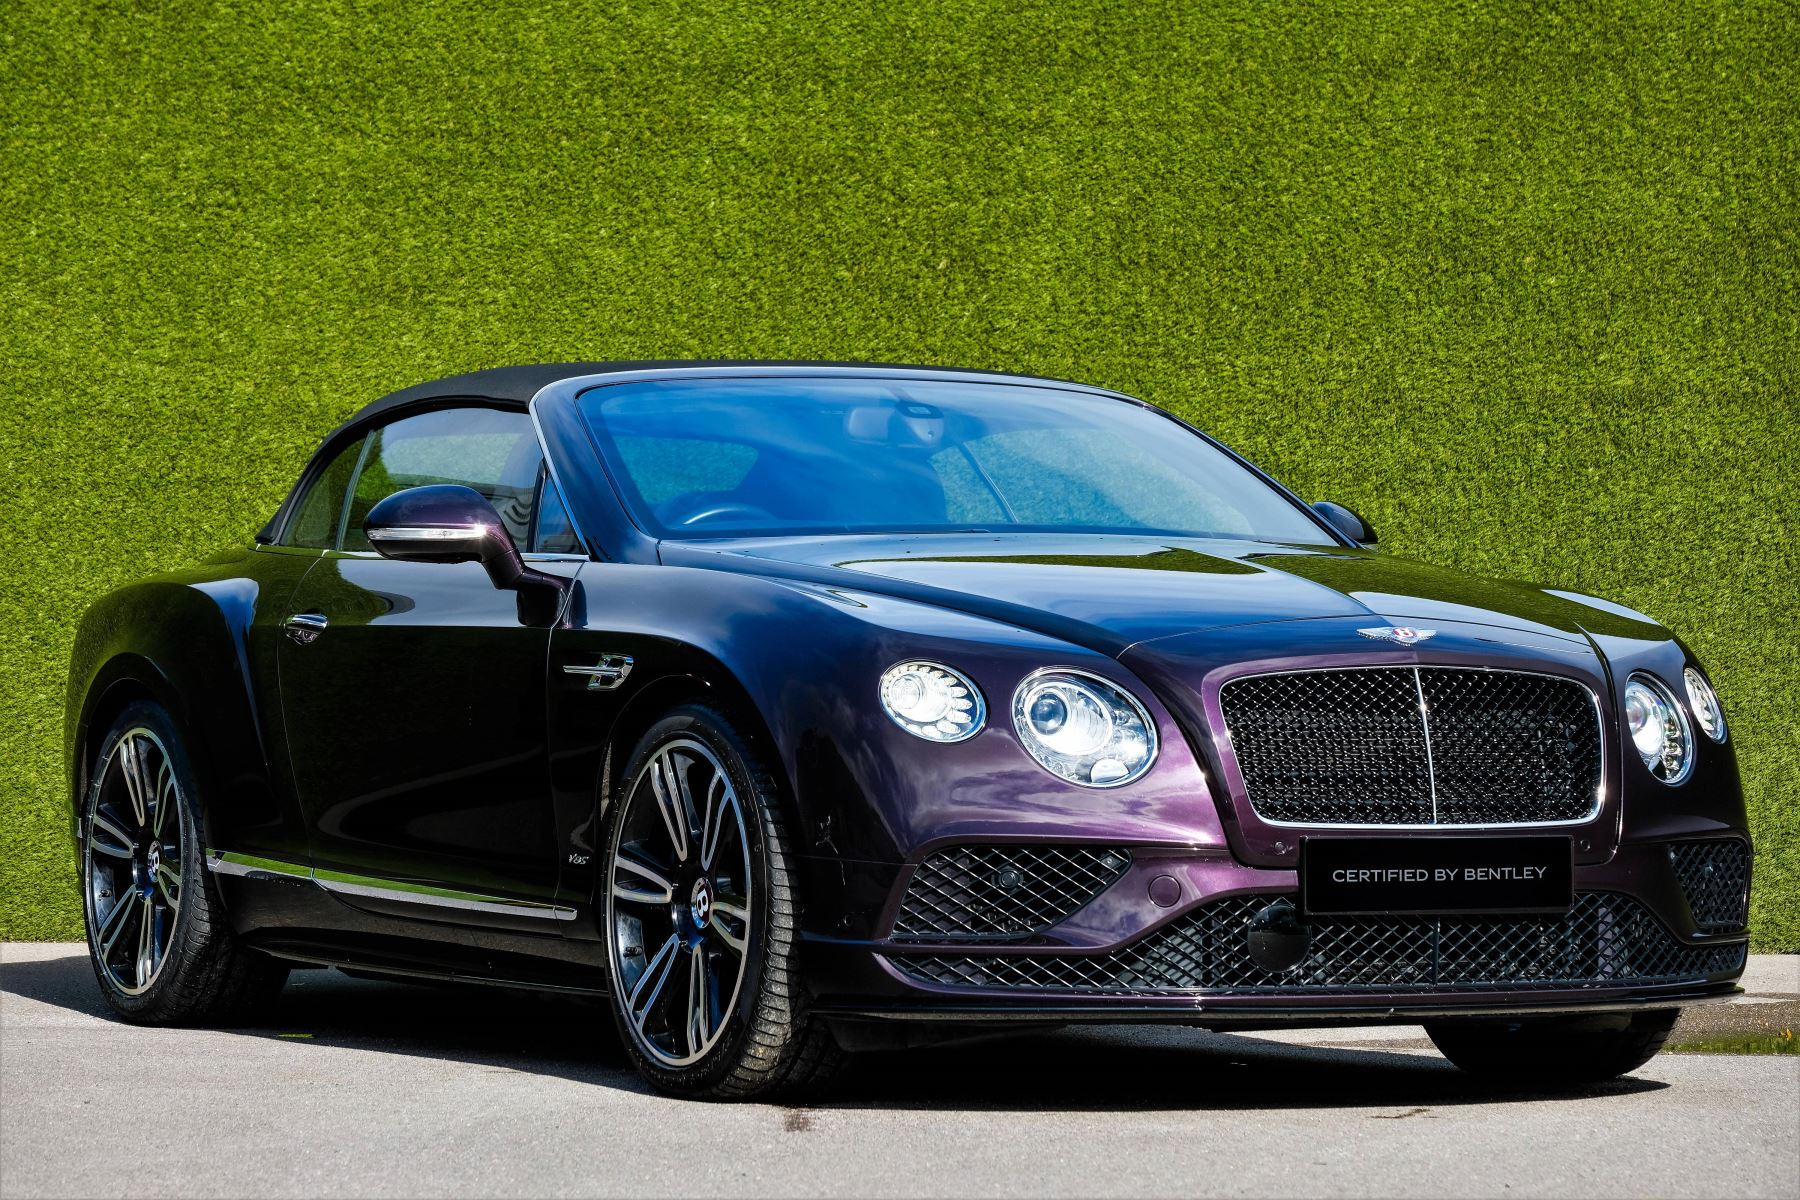 Bentley Continental GTC 4.0 V8 S Mulliner Driving Spec - Premier and All Seasons Specification Automatic 2 door Convertible